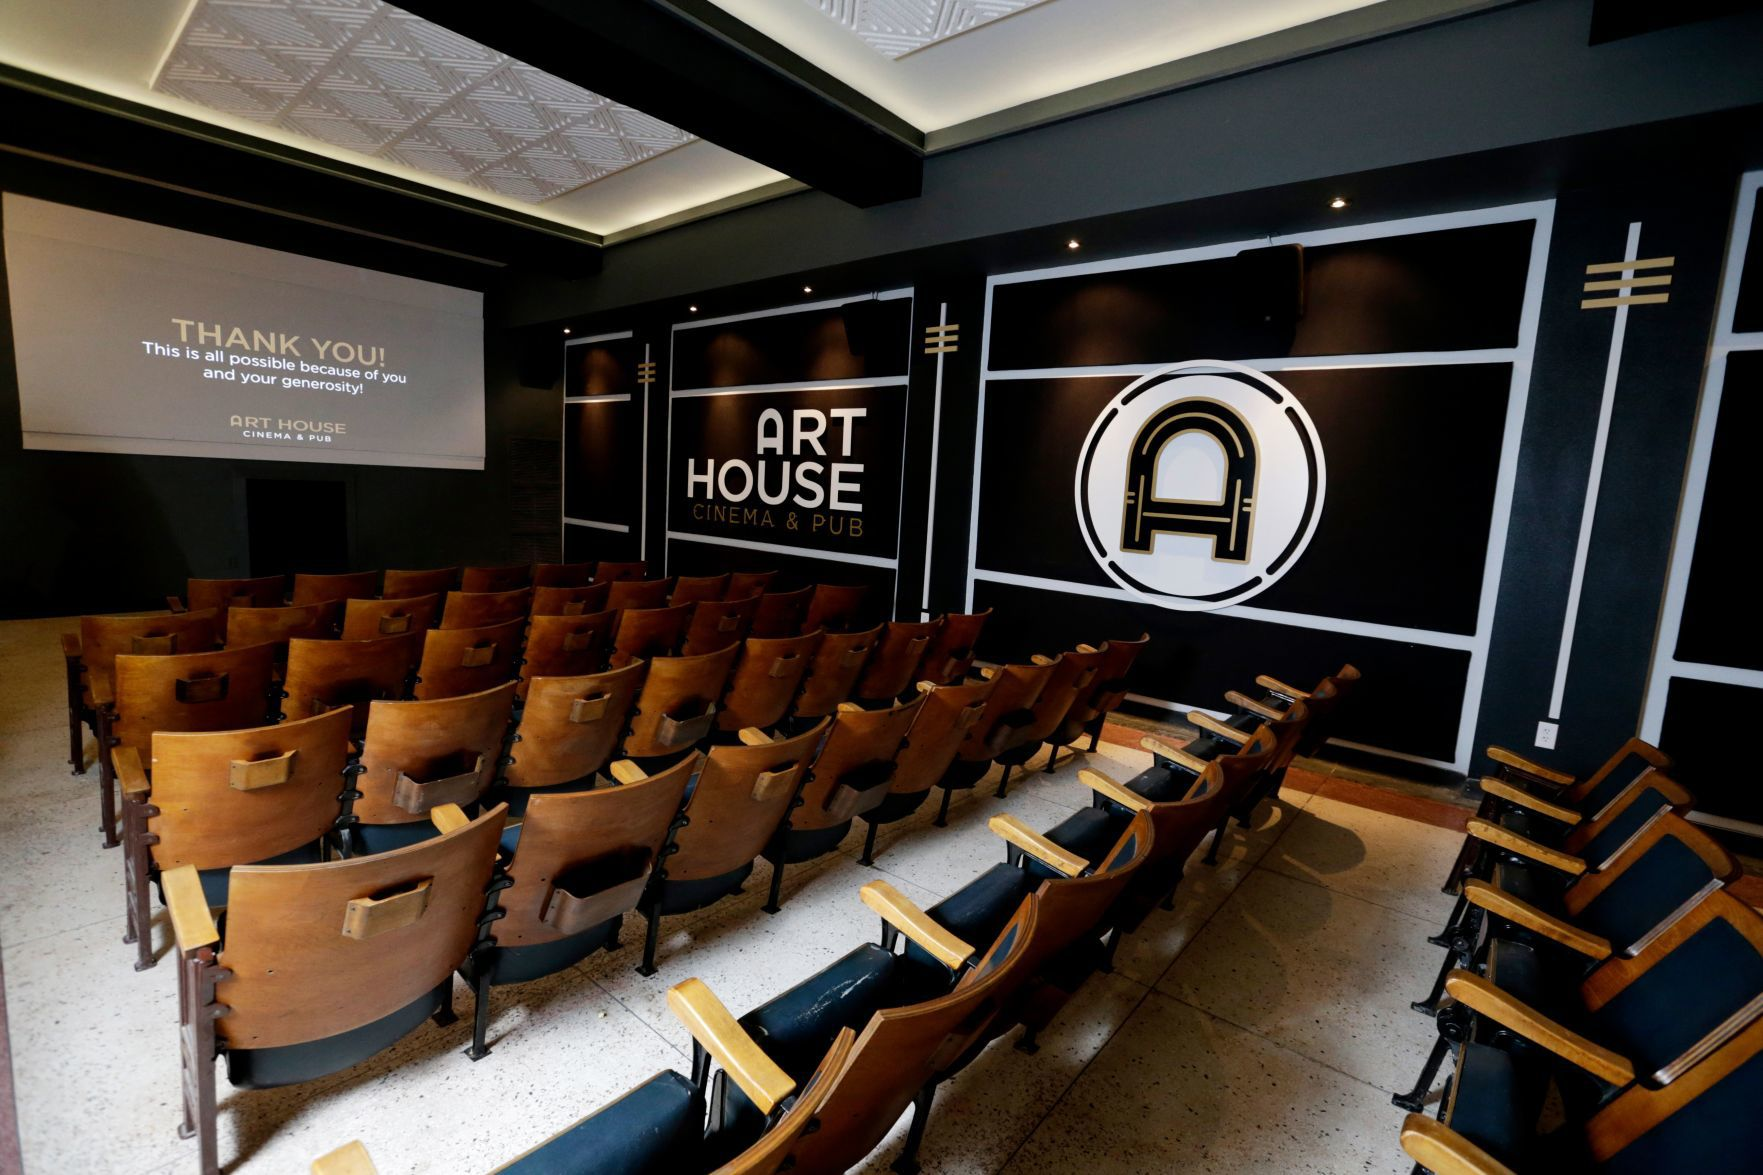 Billings contractor pledges $200K in matching funds for Art House Cinema upgrade | Billings Gazette